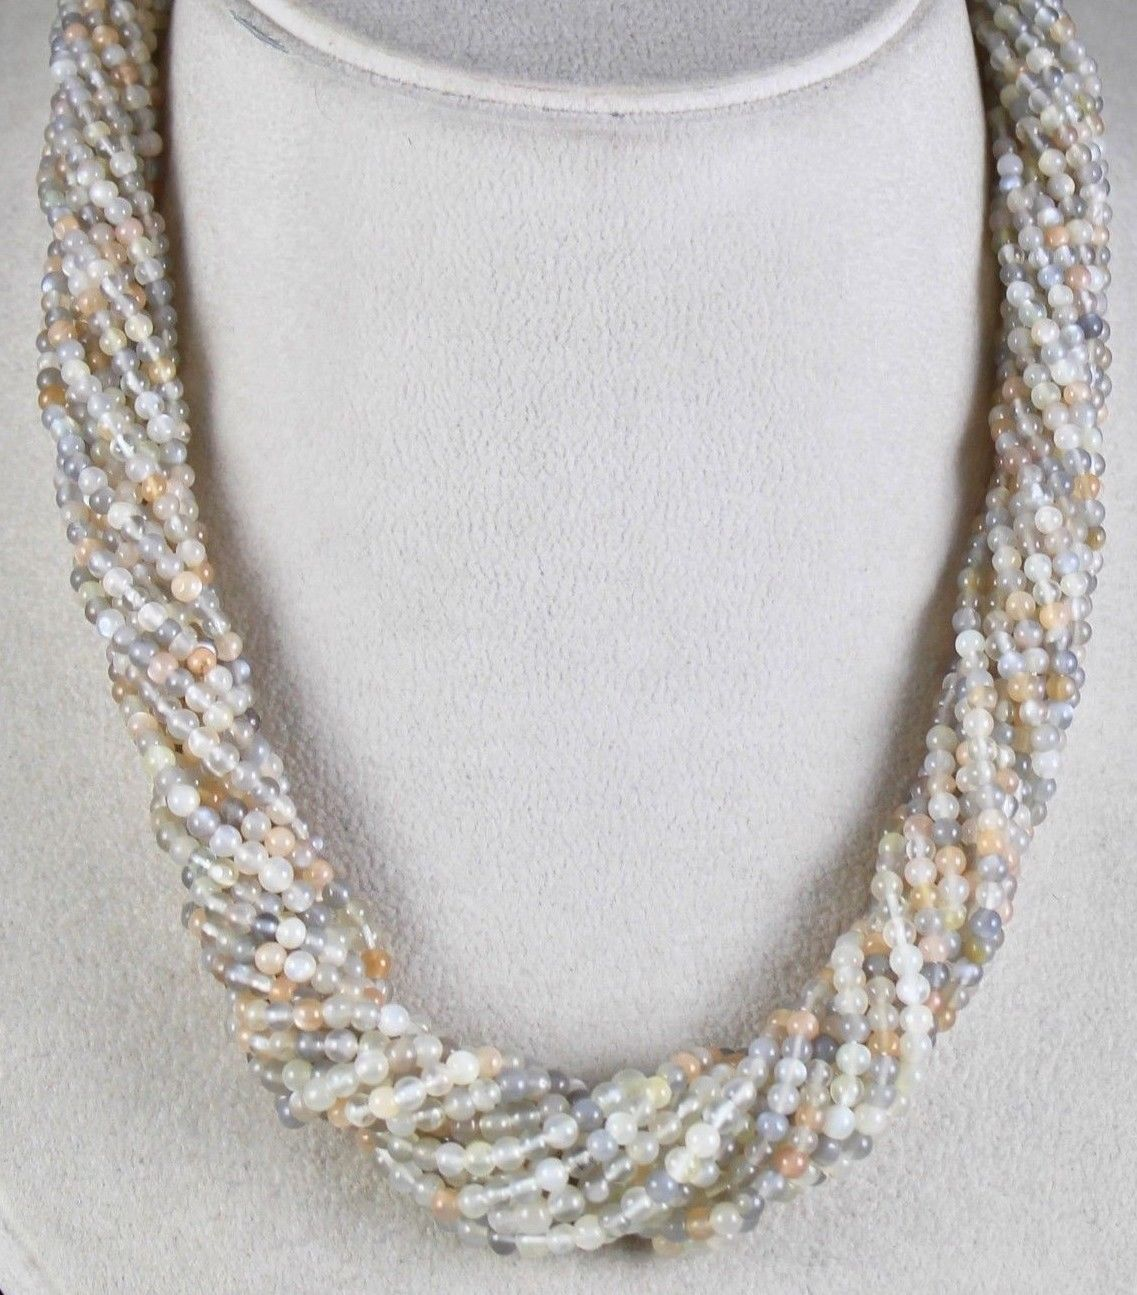 14 LINE 519 CTS NATURAL MOONSTONE ROUND GEMSTONE BEADS NECKLACE WITH SILVER HOOK